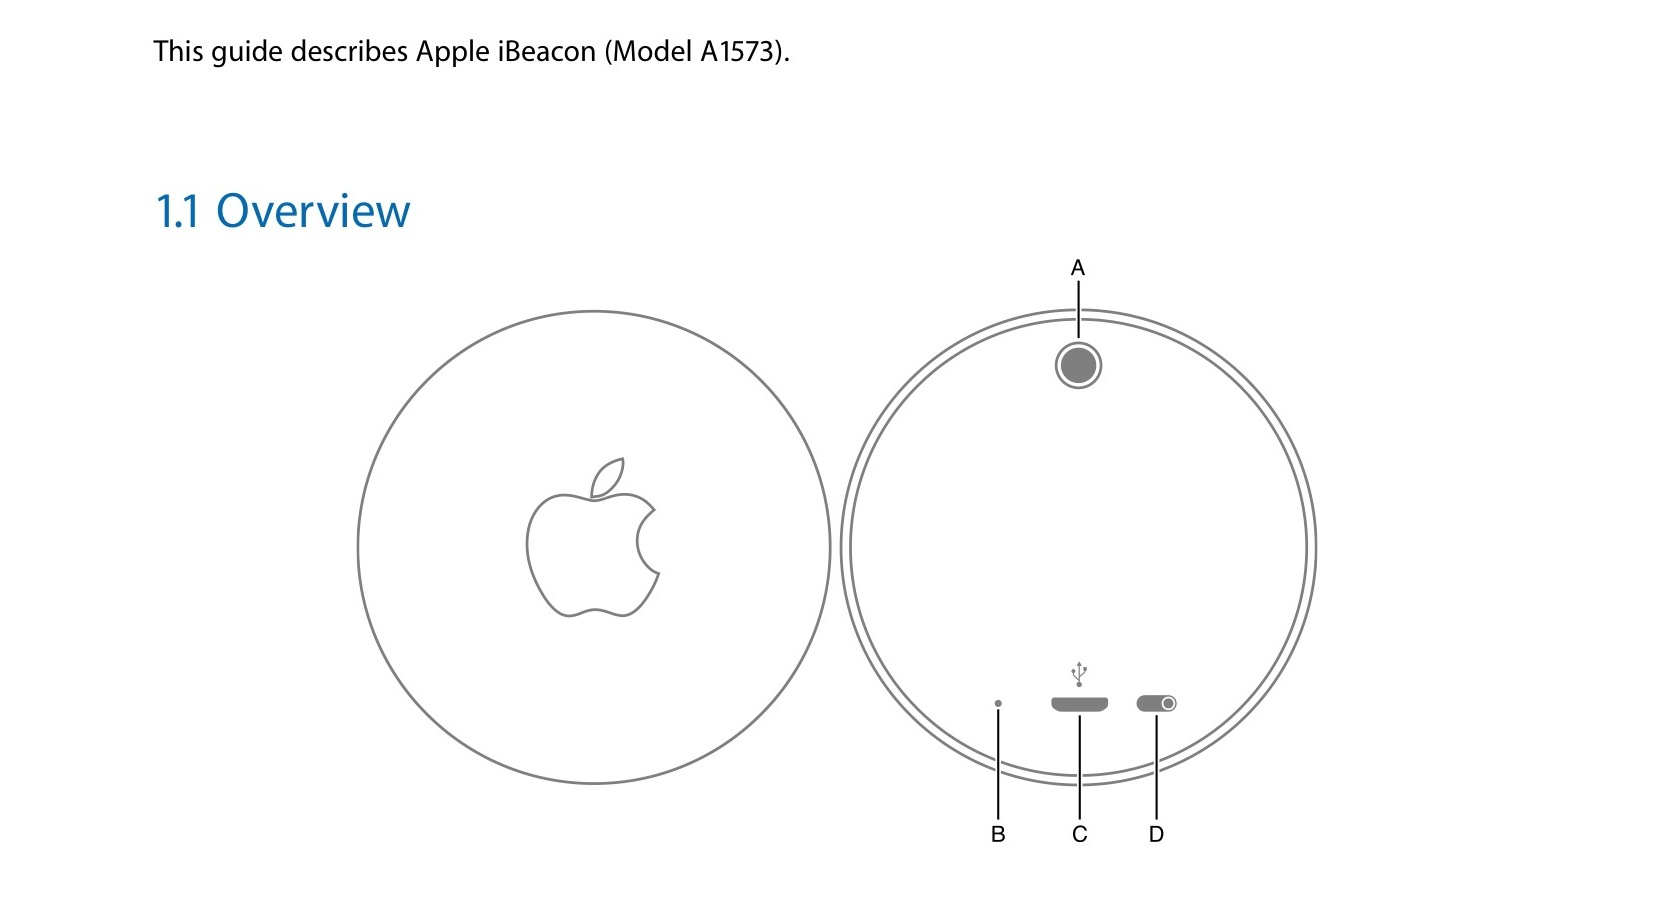 Apple iBeacon puck detailed